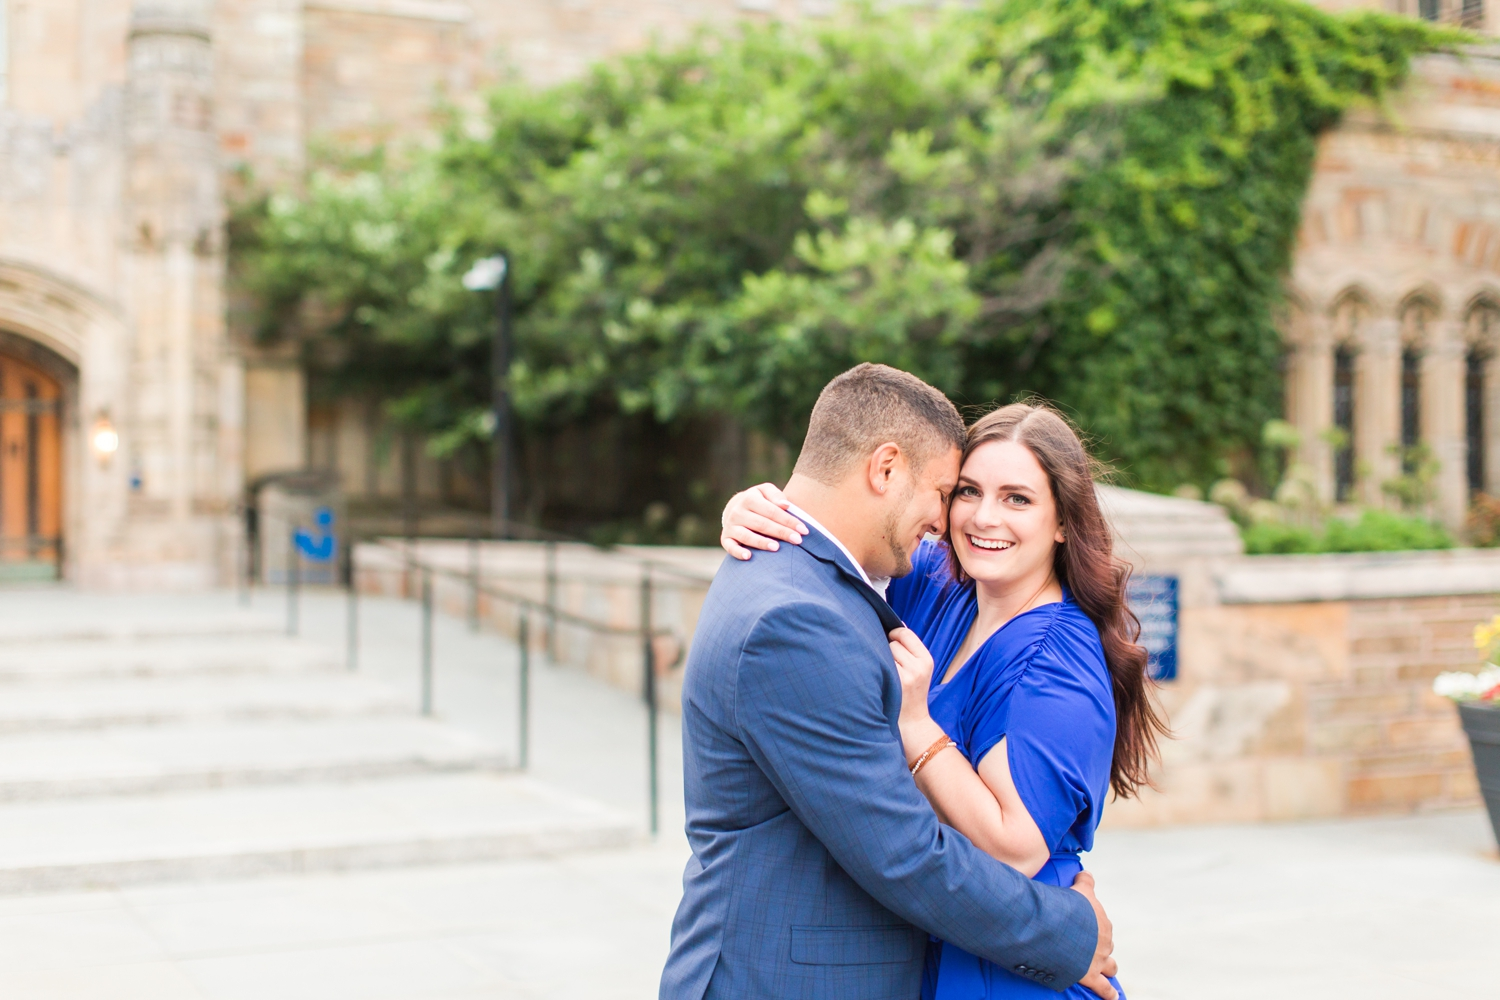 yale-university-engagement-session-new-haven-connecticut-wedding-photographer-summer-matt-shaina-lee-photography-photo